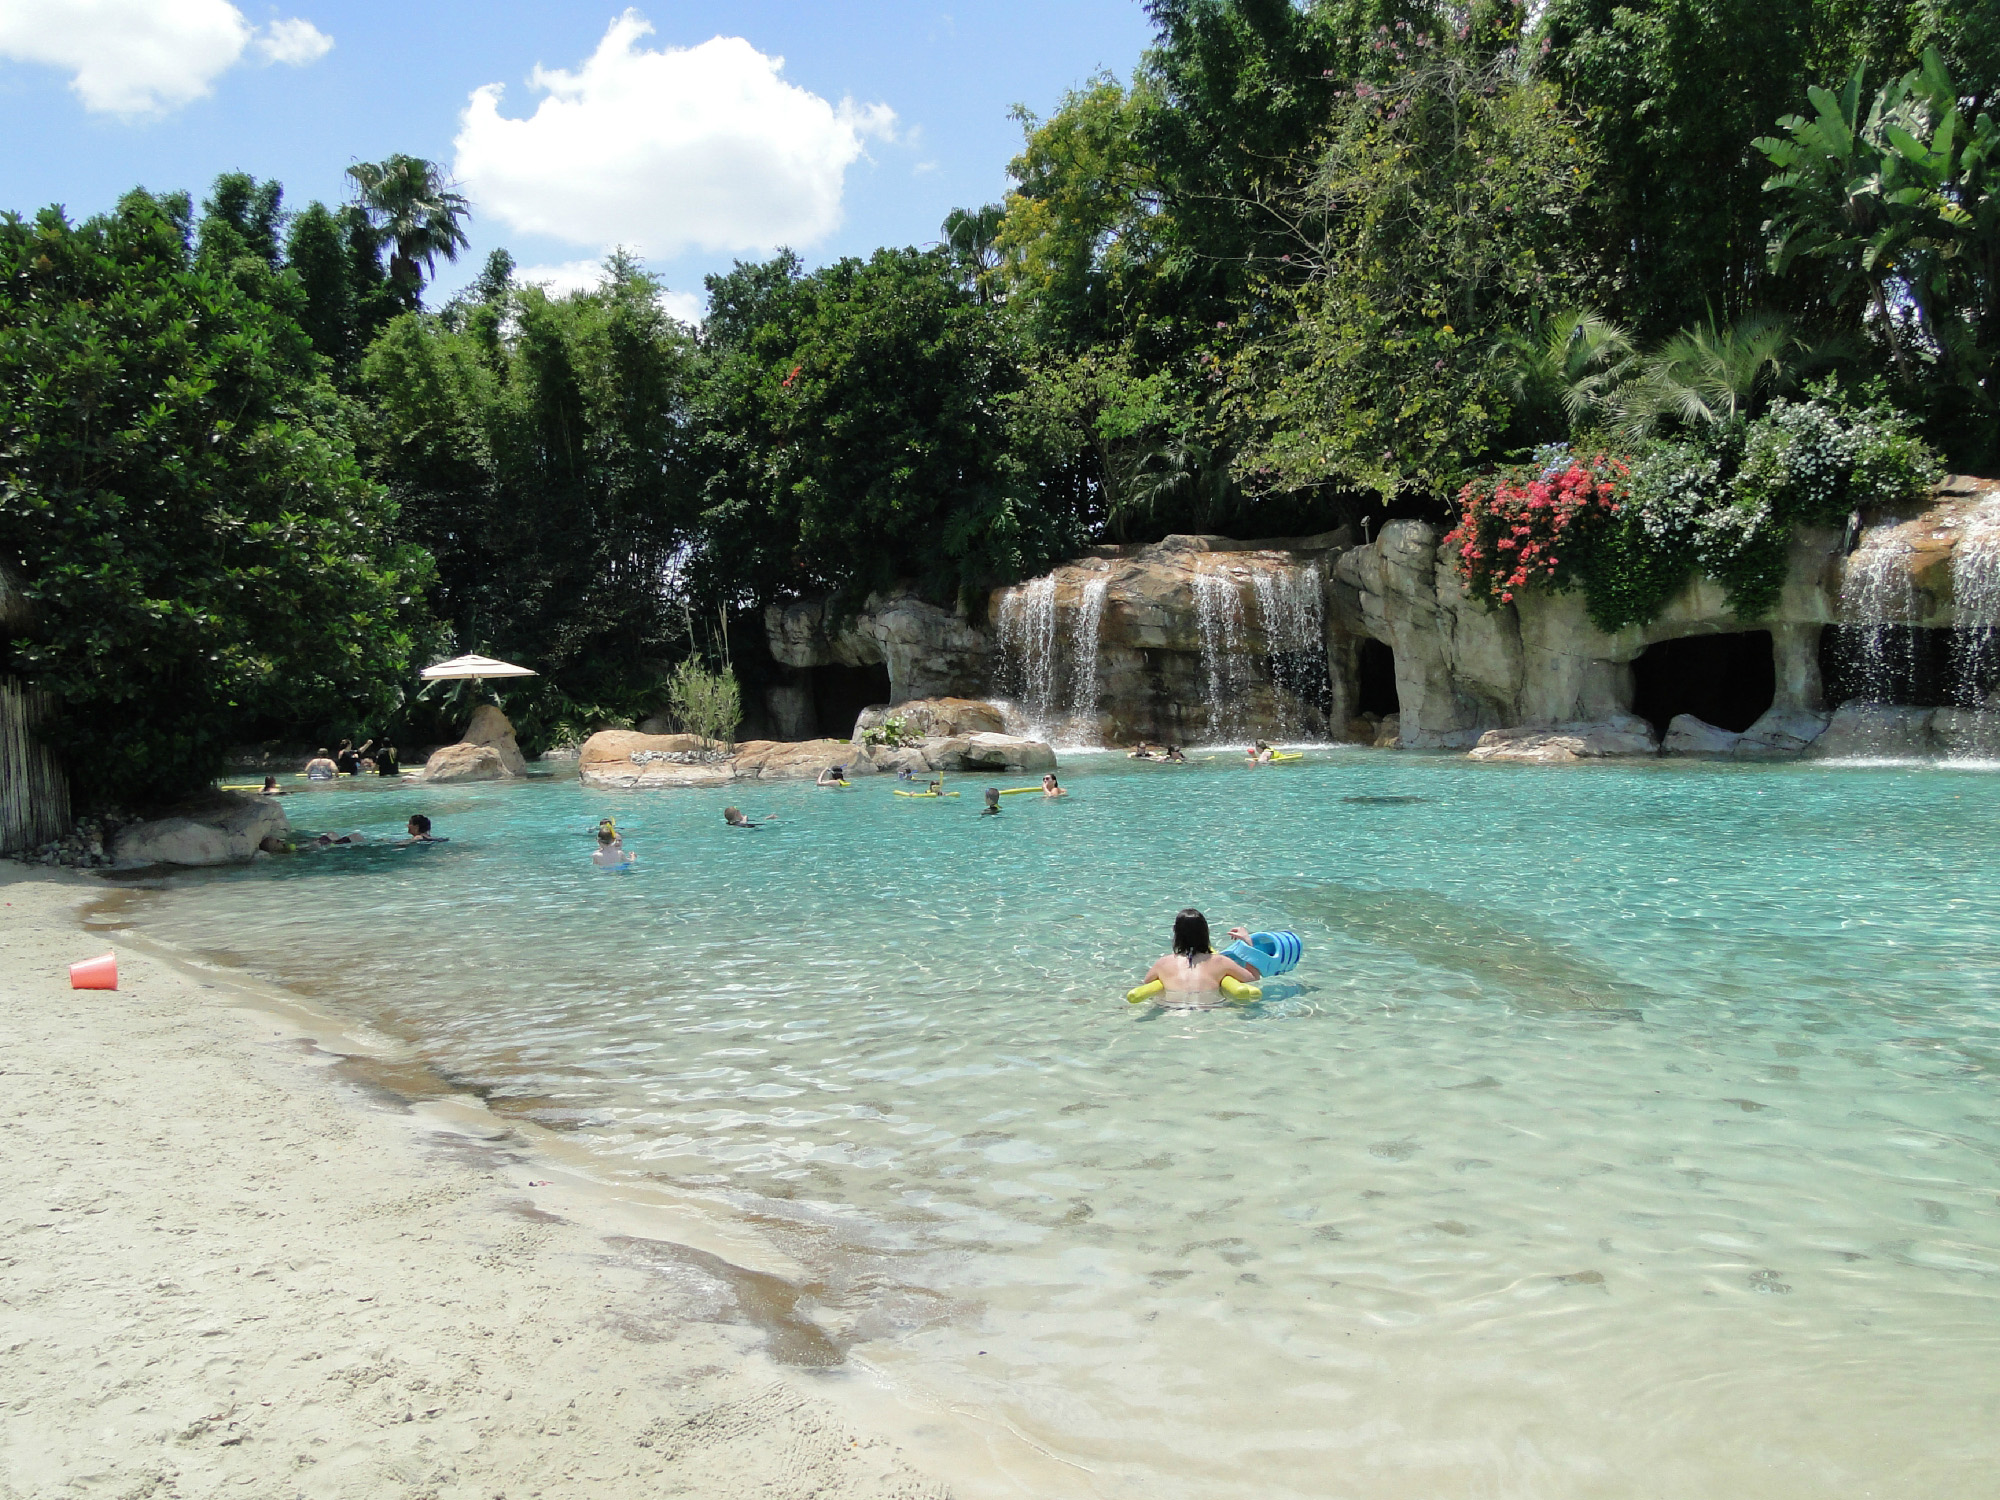 Discovery Cove in Orlando, FL  is the #1 amusement park in the U.S. and world, according to the TripAdvisor Travelers' Choice Amusement Parks and Water Parks.